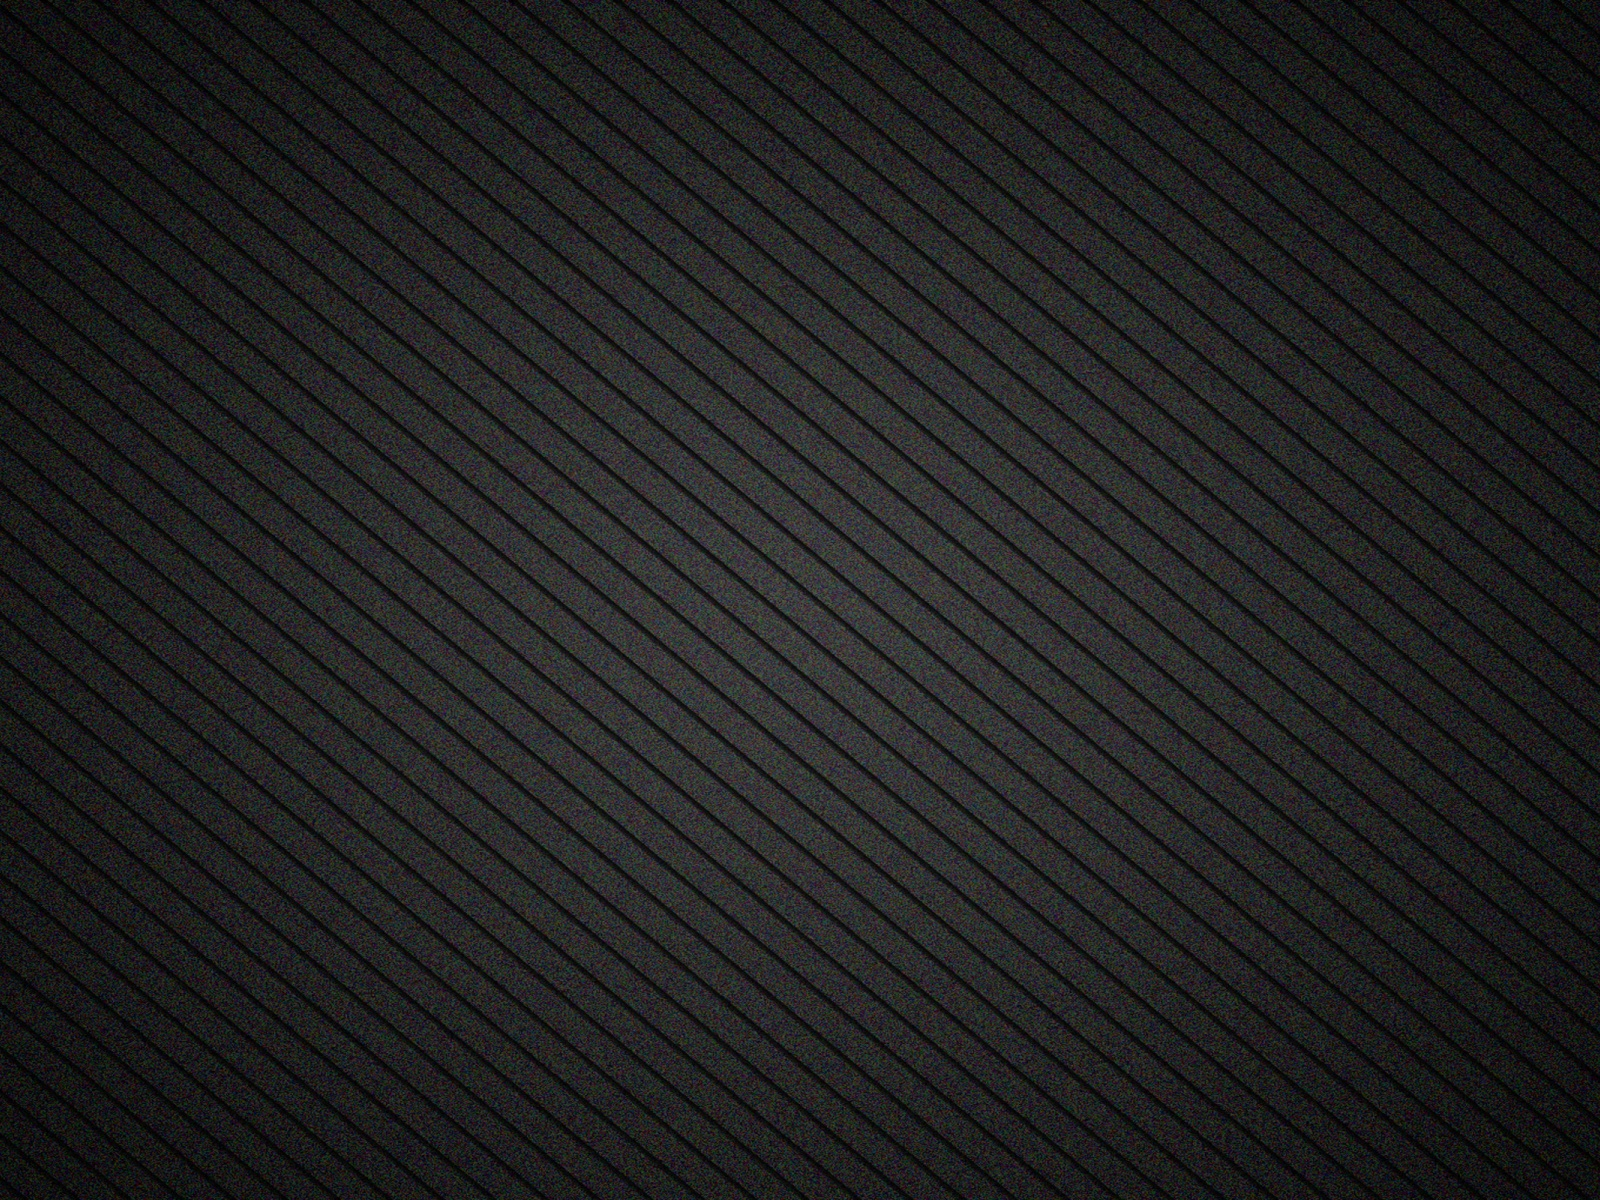 1600x1200 black lines wallpaper desktop pc and mac wallpaper - Desktop wallpaper 1600x1200 ...